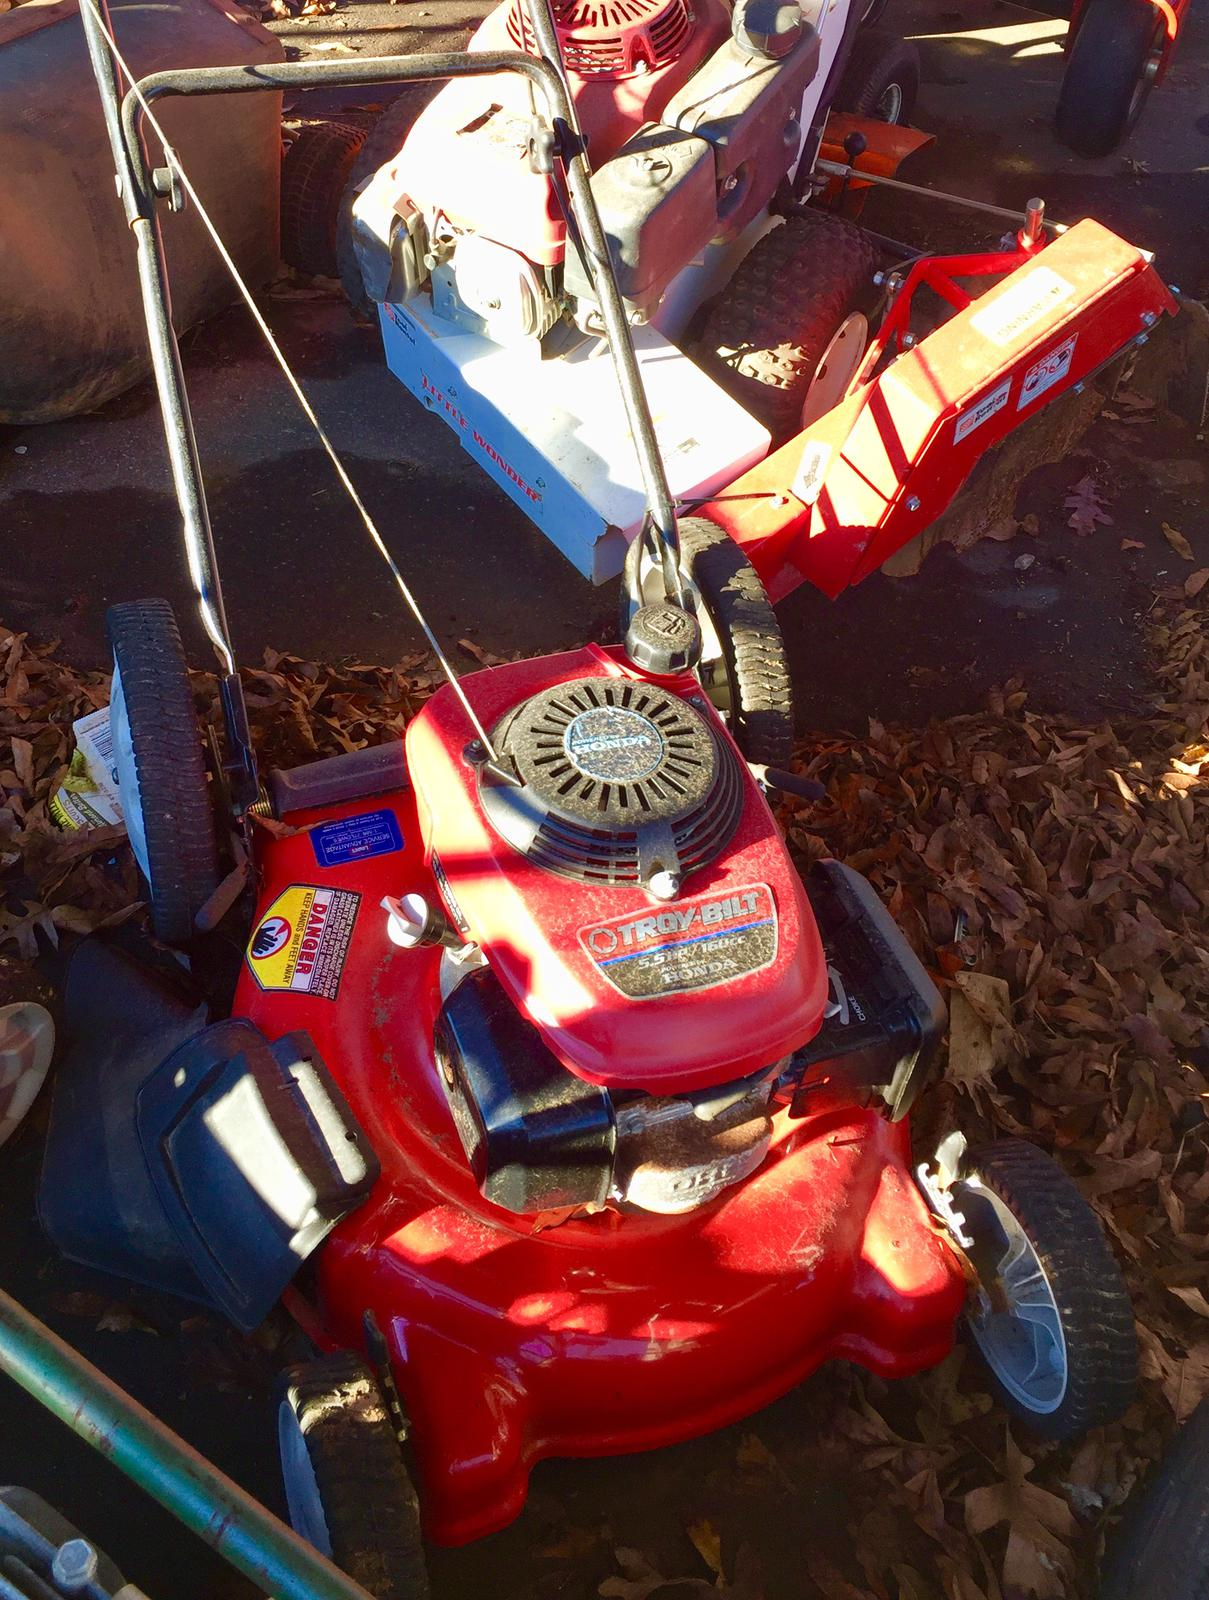 Troy Bilt 5 5 HP Self Propel for sale in Hickory NC